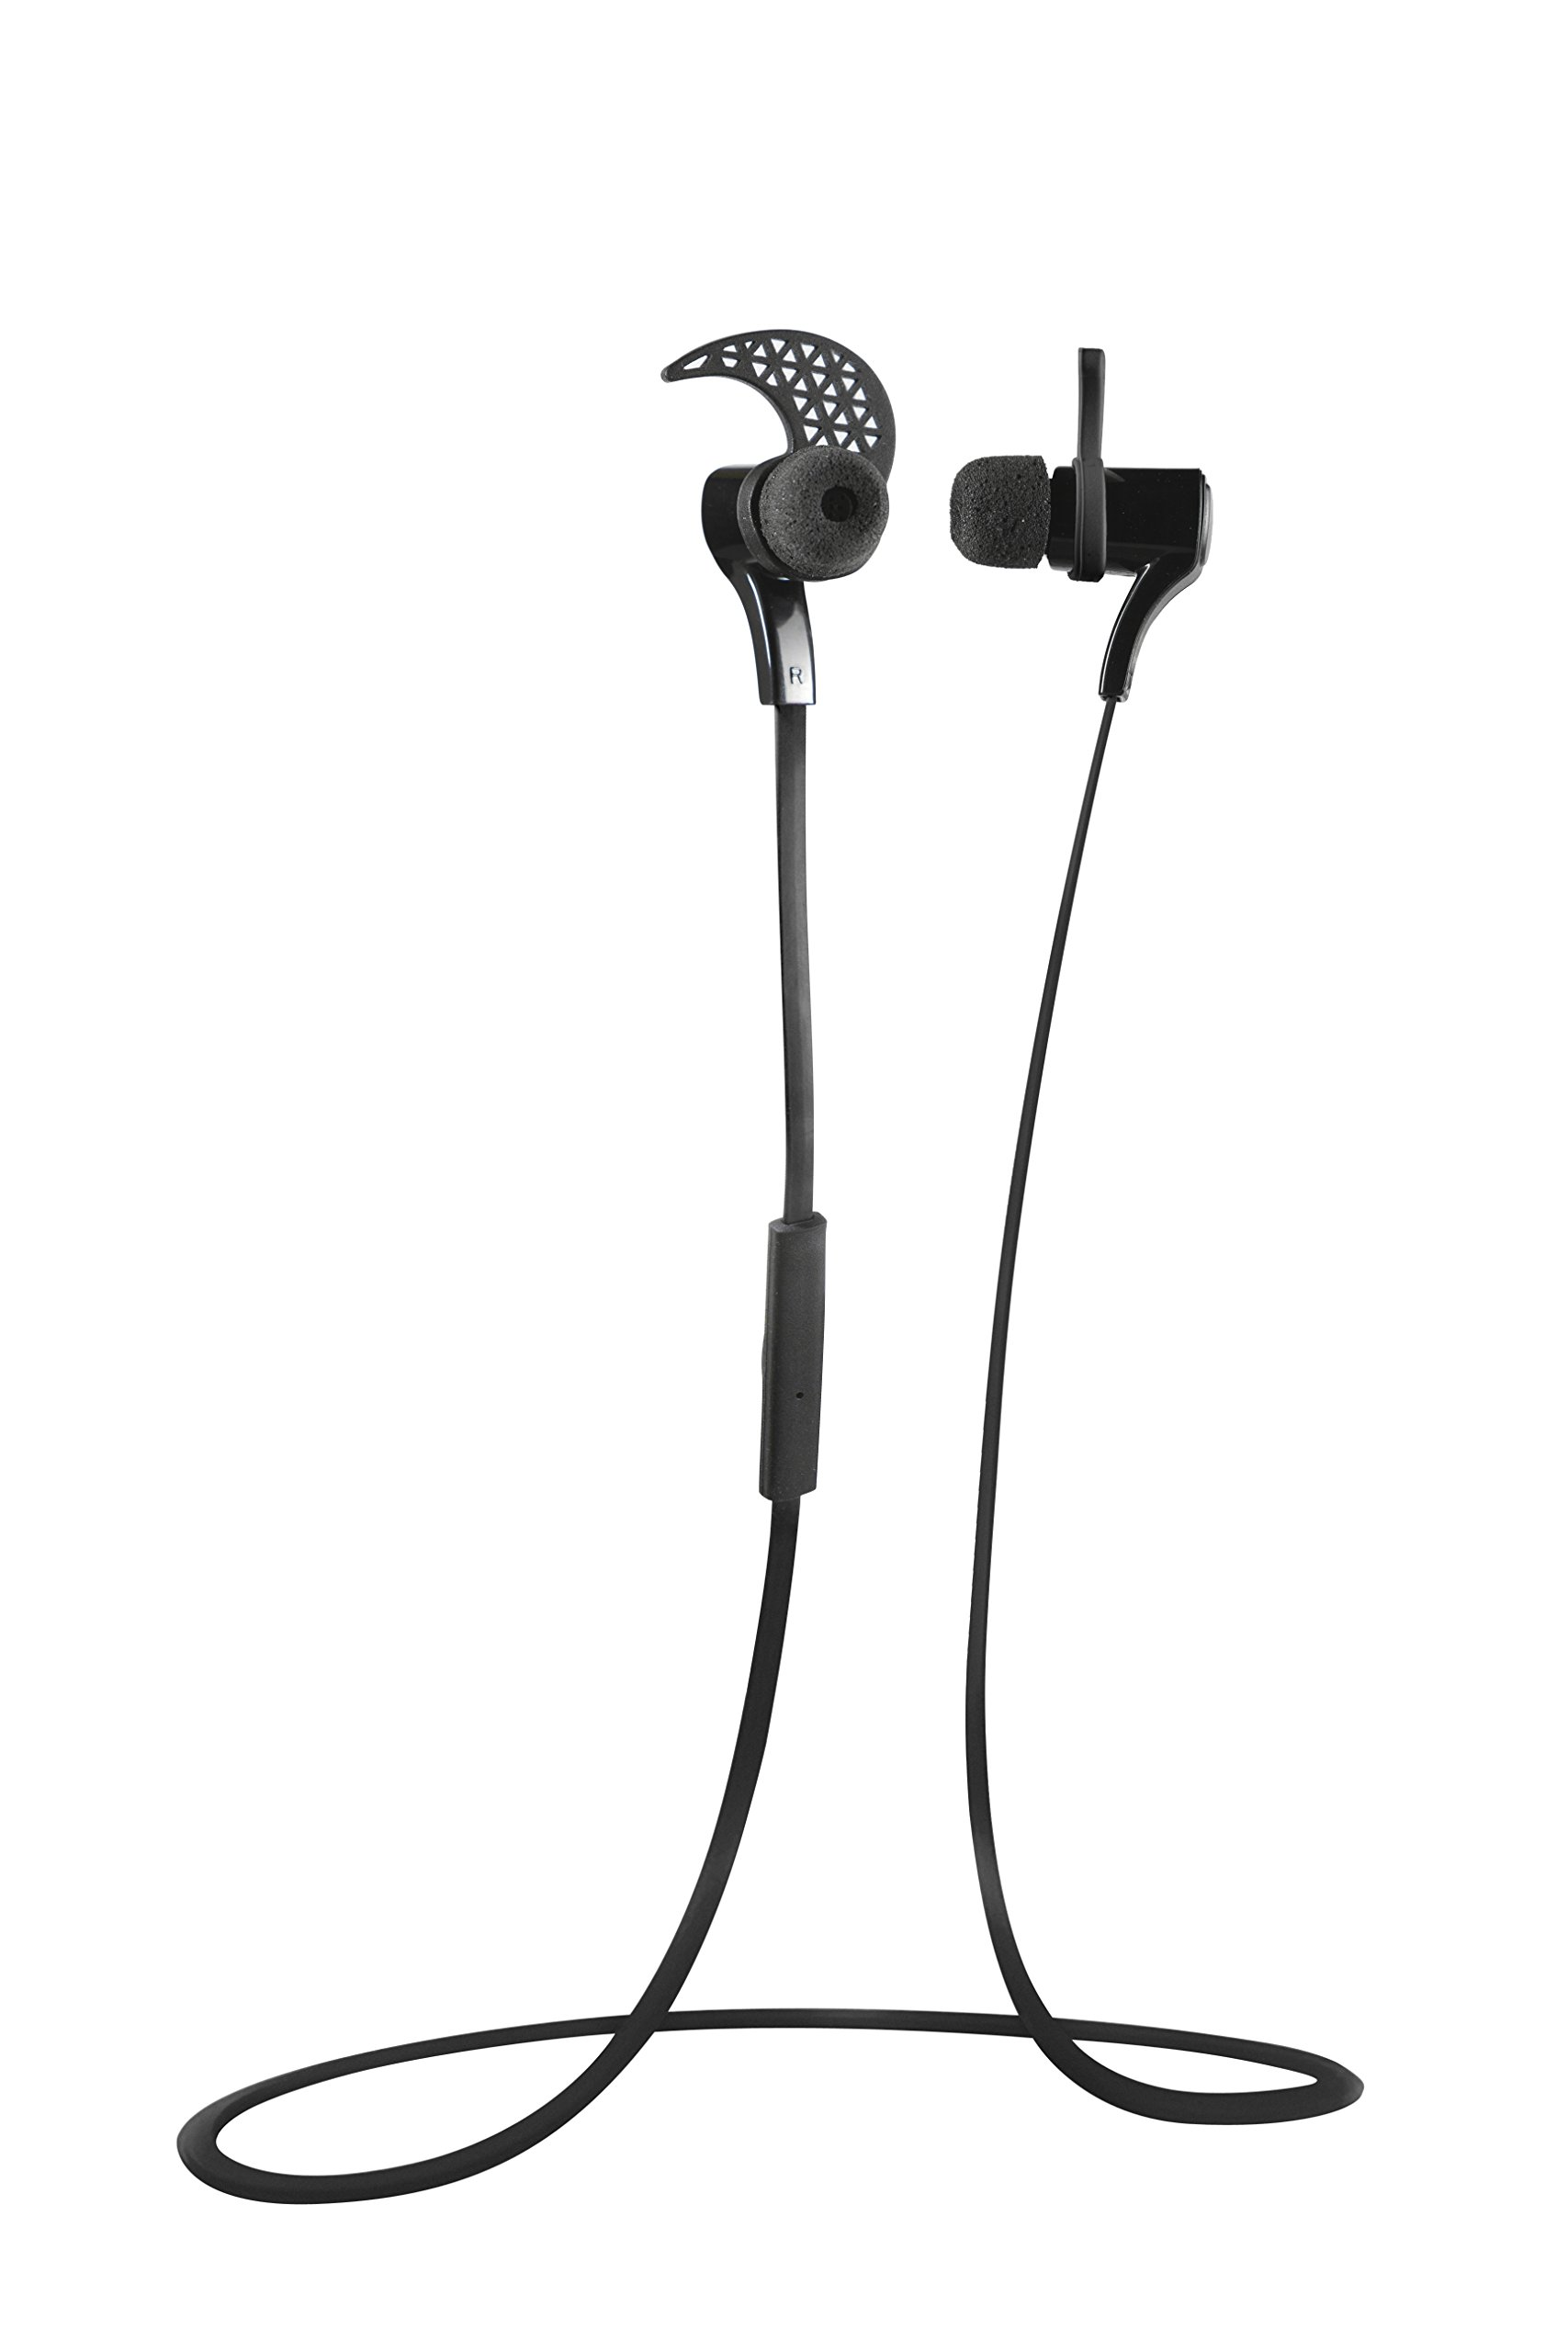 Outdoor Tech OT5300 Orcas 2.0 Ultralight Wireless Bluetooth Earbuds with Comply Foam Eartips (Black) by Outdoor Technology